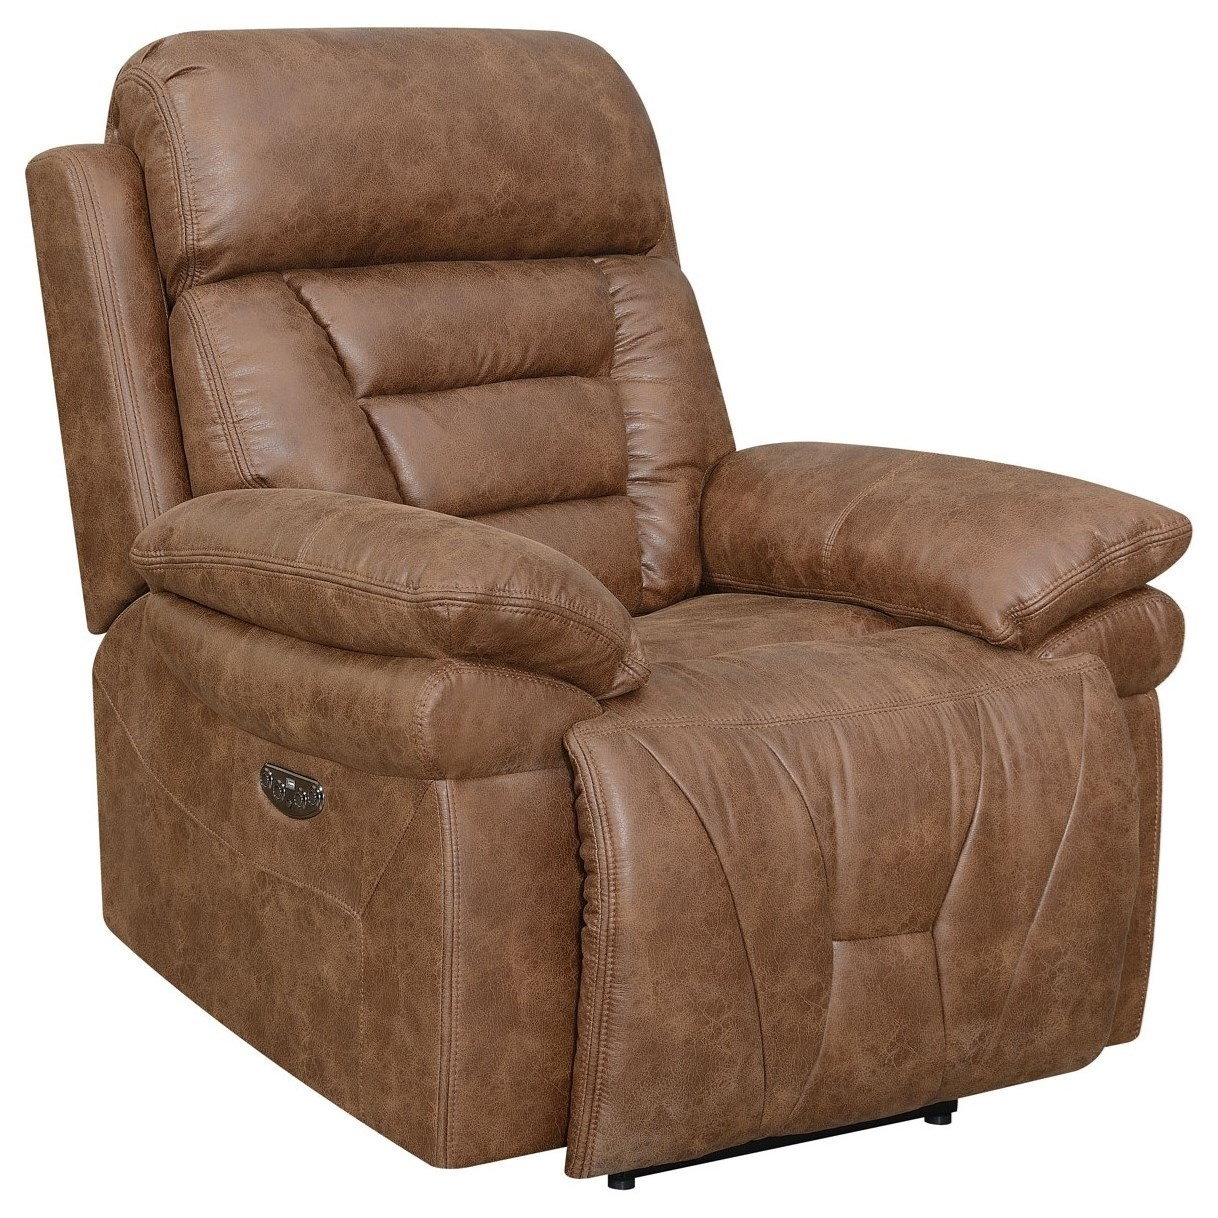 Brock Lay Flat Power Recliner by Steve Silver at Standard Furniture